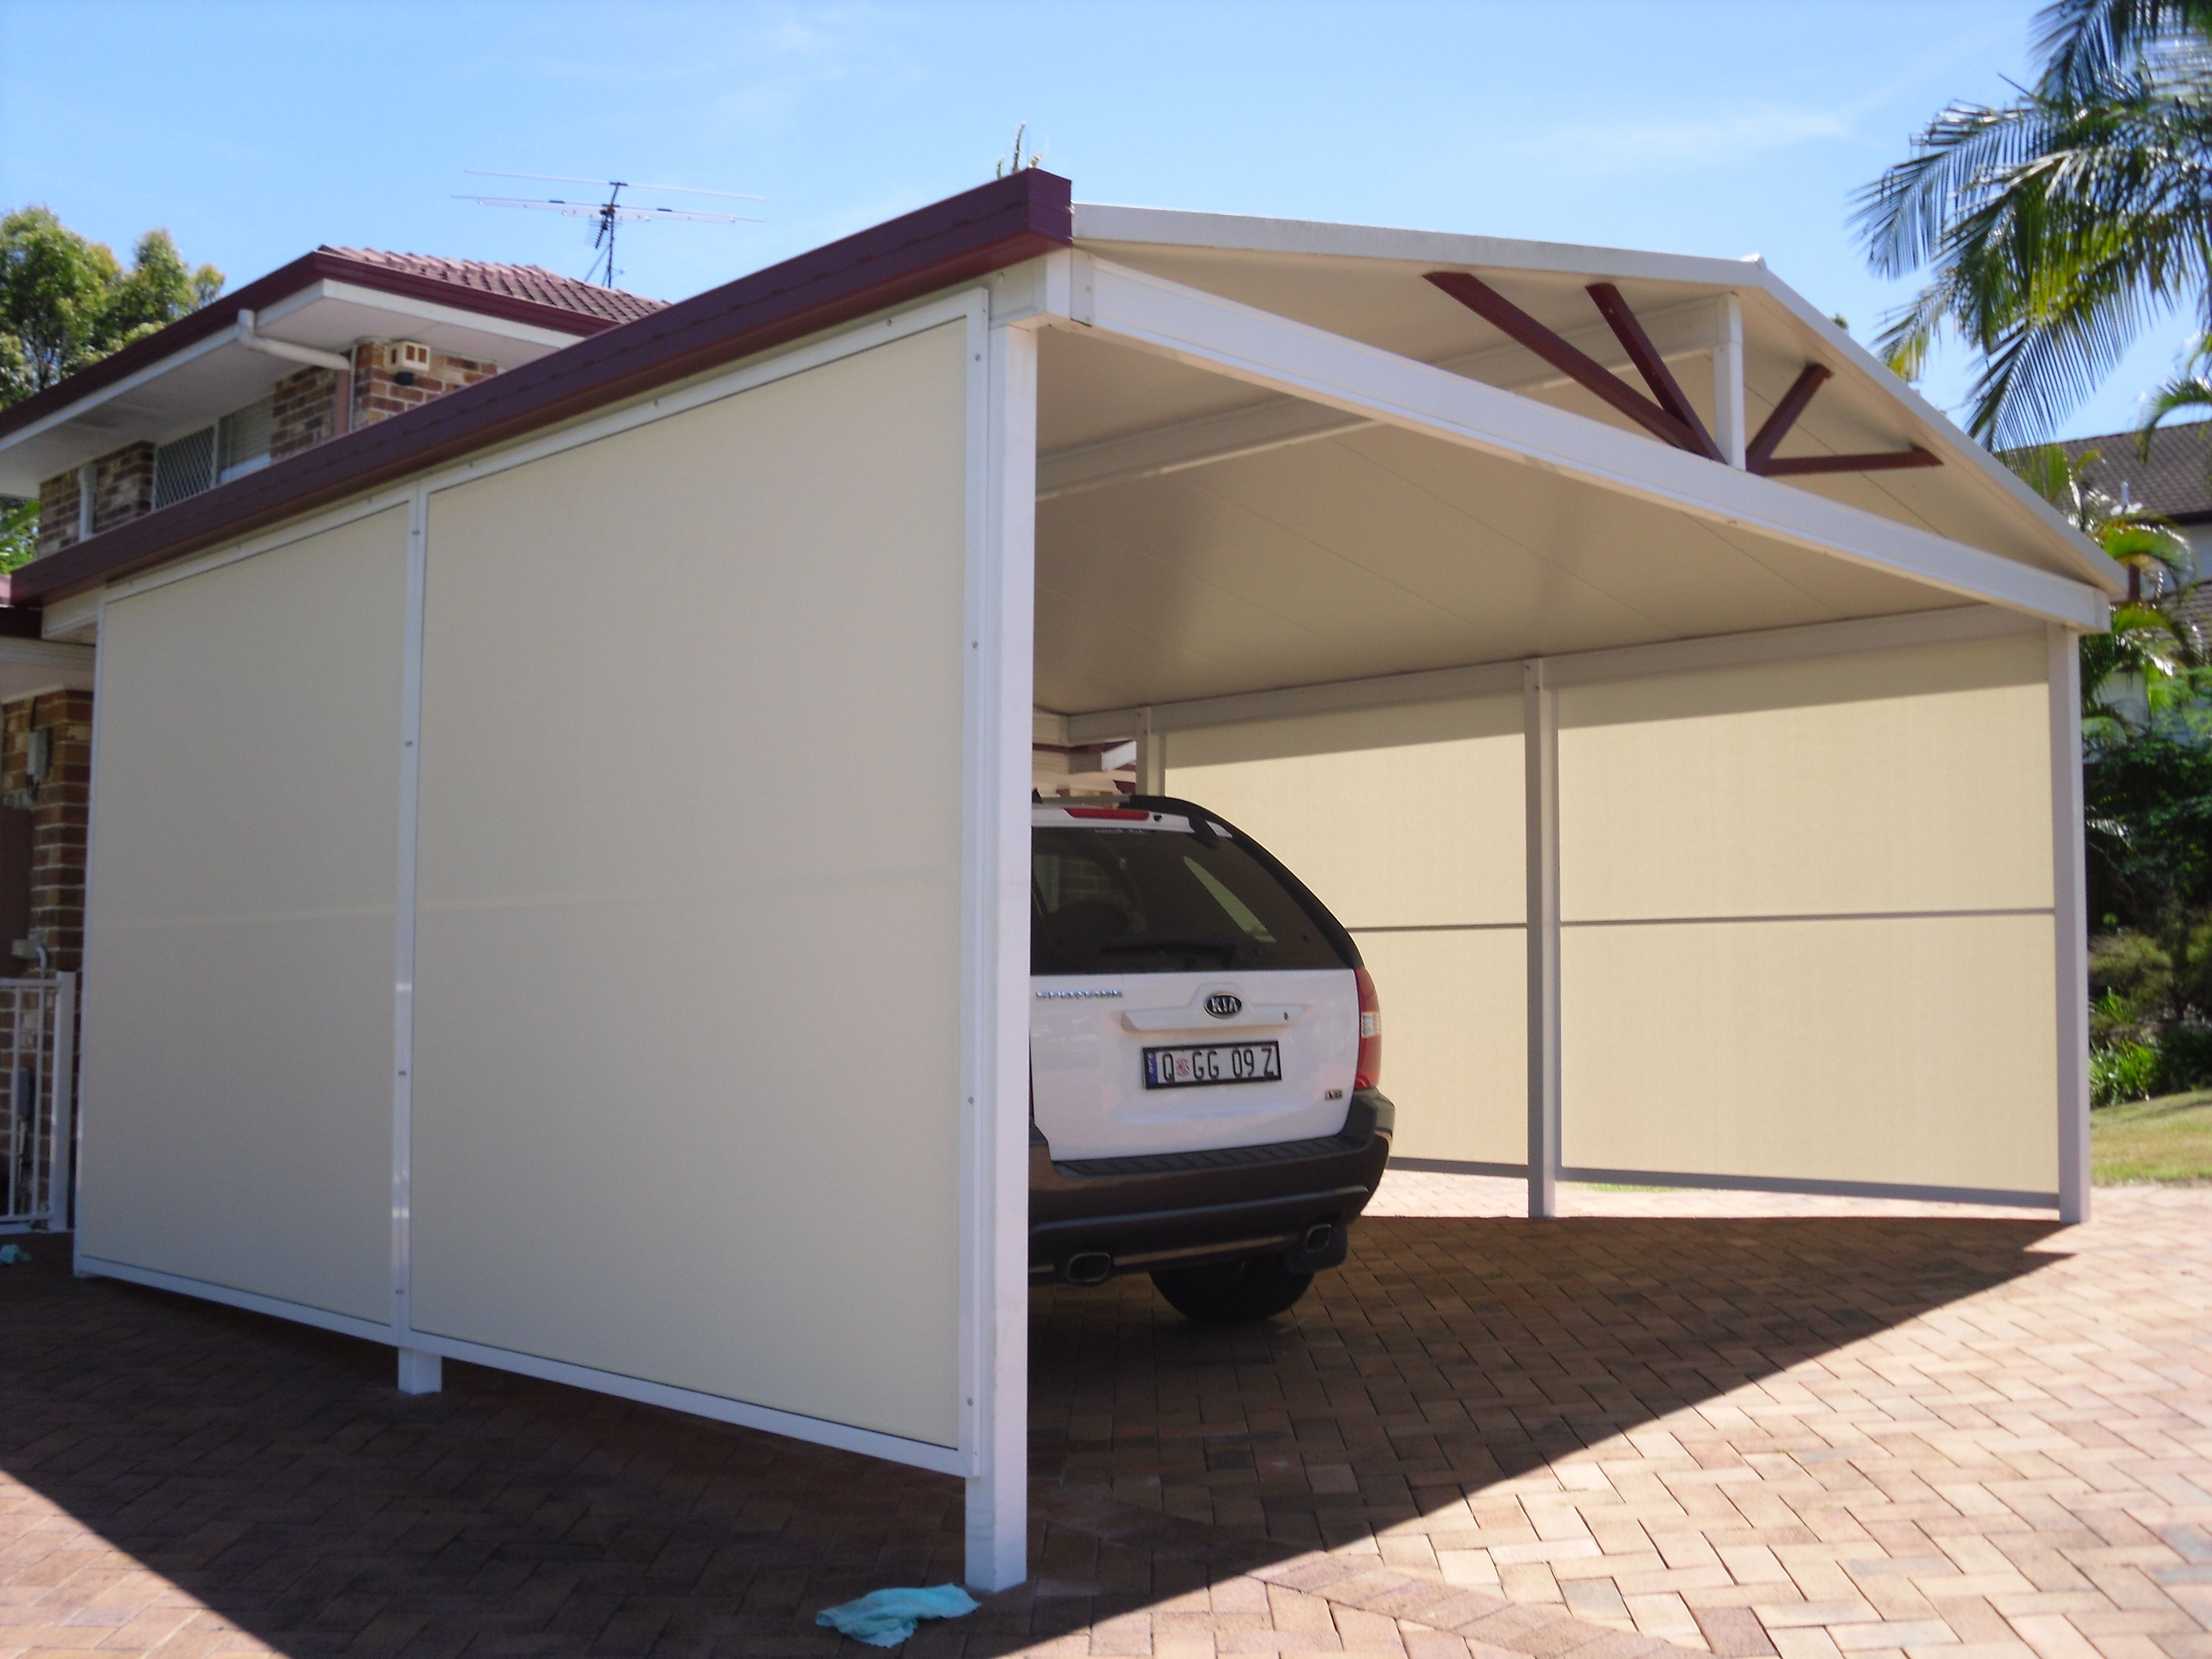 Privacy Screens For Your Carport We Used Pvc Mesh Fabric As An Infill For These Screens As You Can See They Give Ple Fabric Decor Dulux Colour Privacy Screen